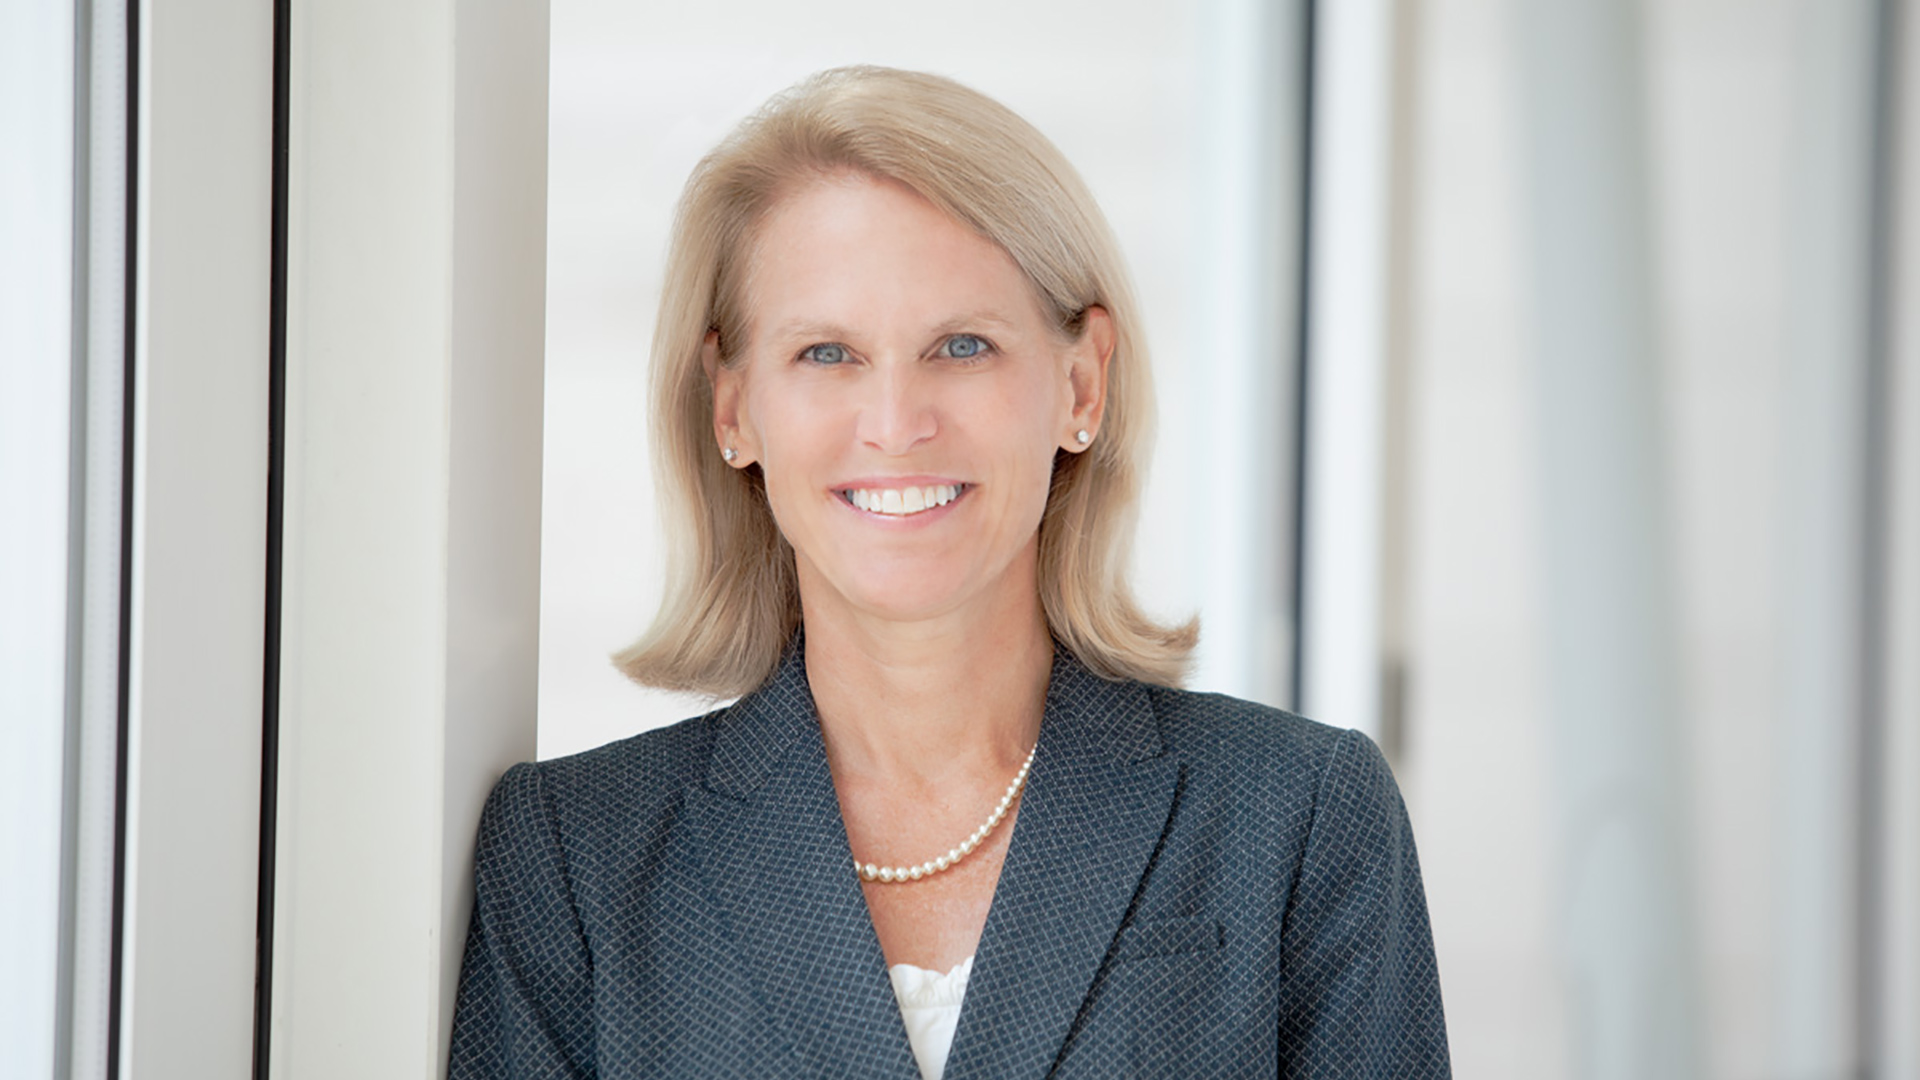 Current Dean of UMD's College of Education Dr. Jennifer King Rice Is Appointed UMD's New Provost